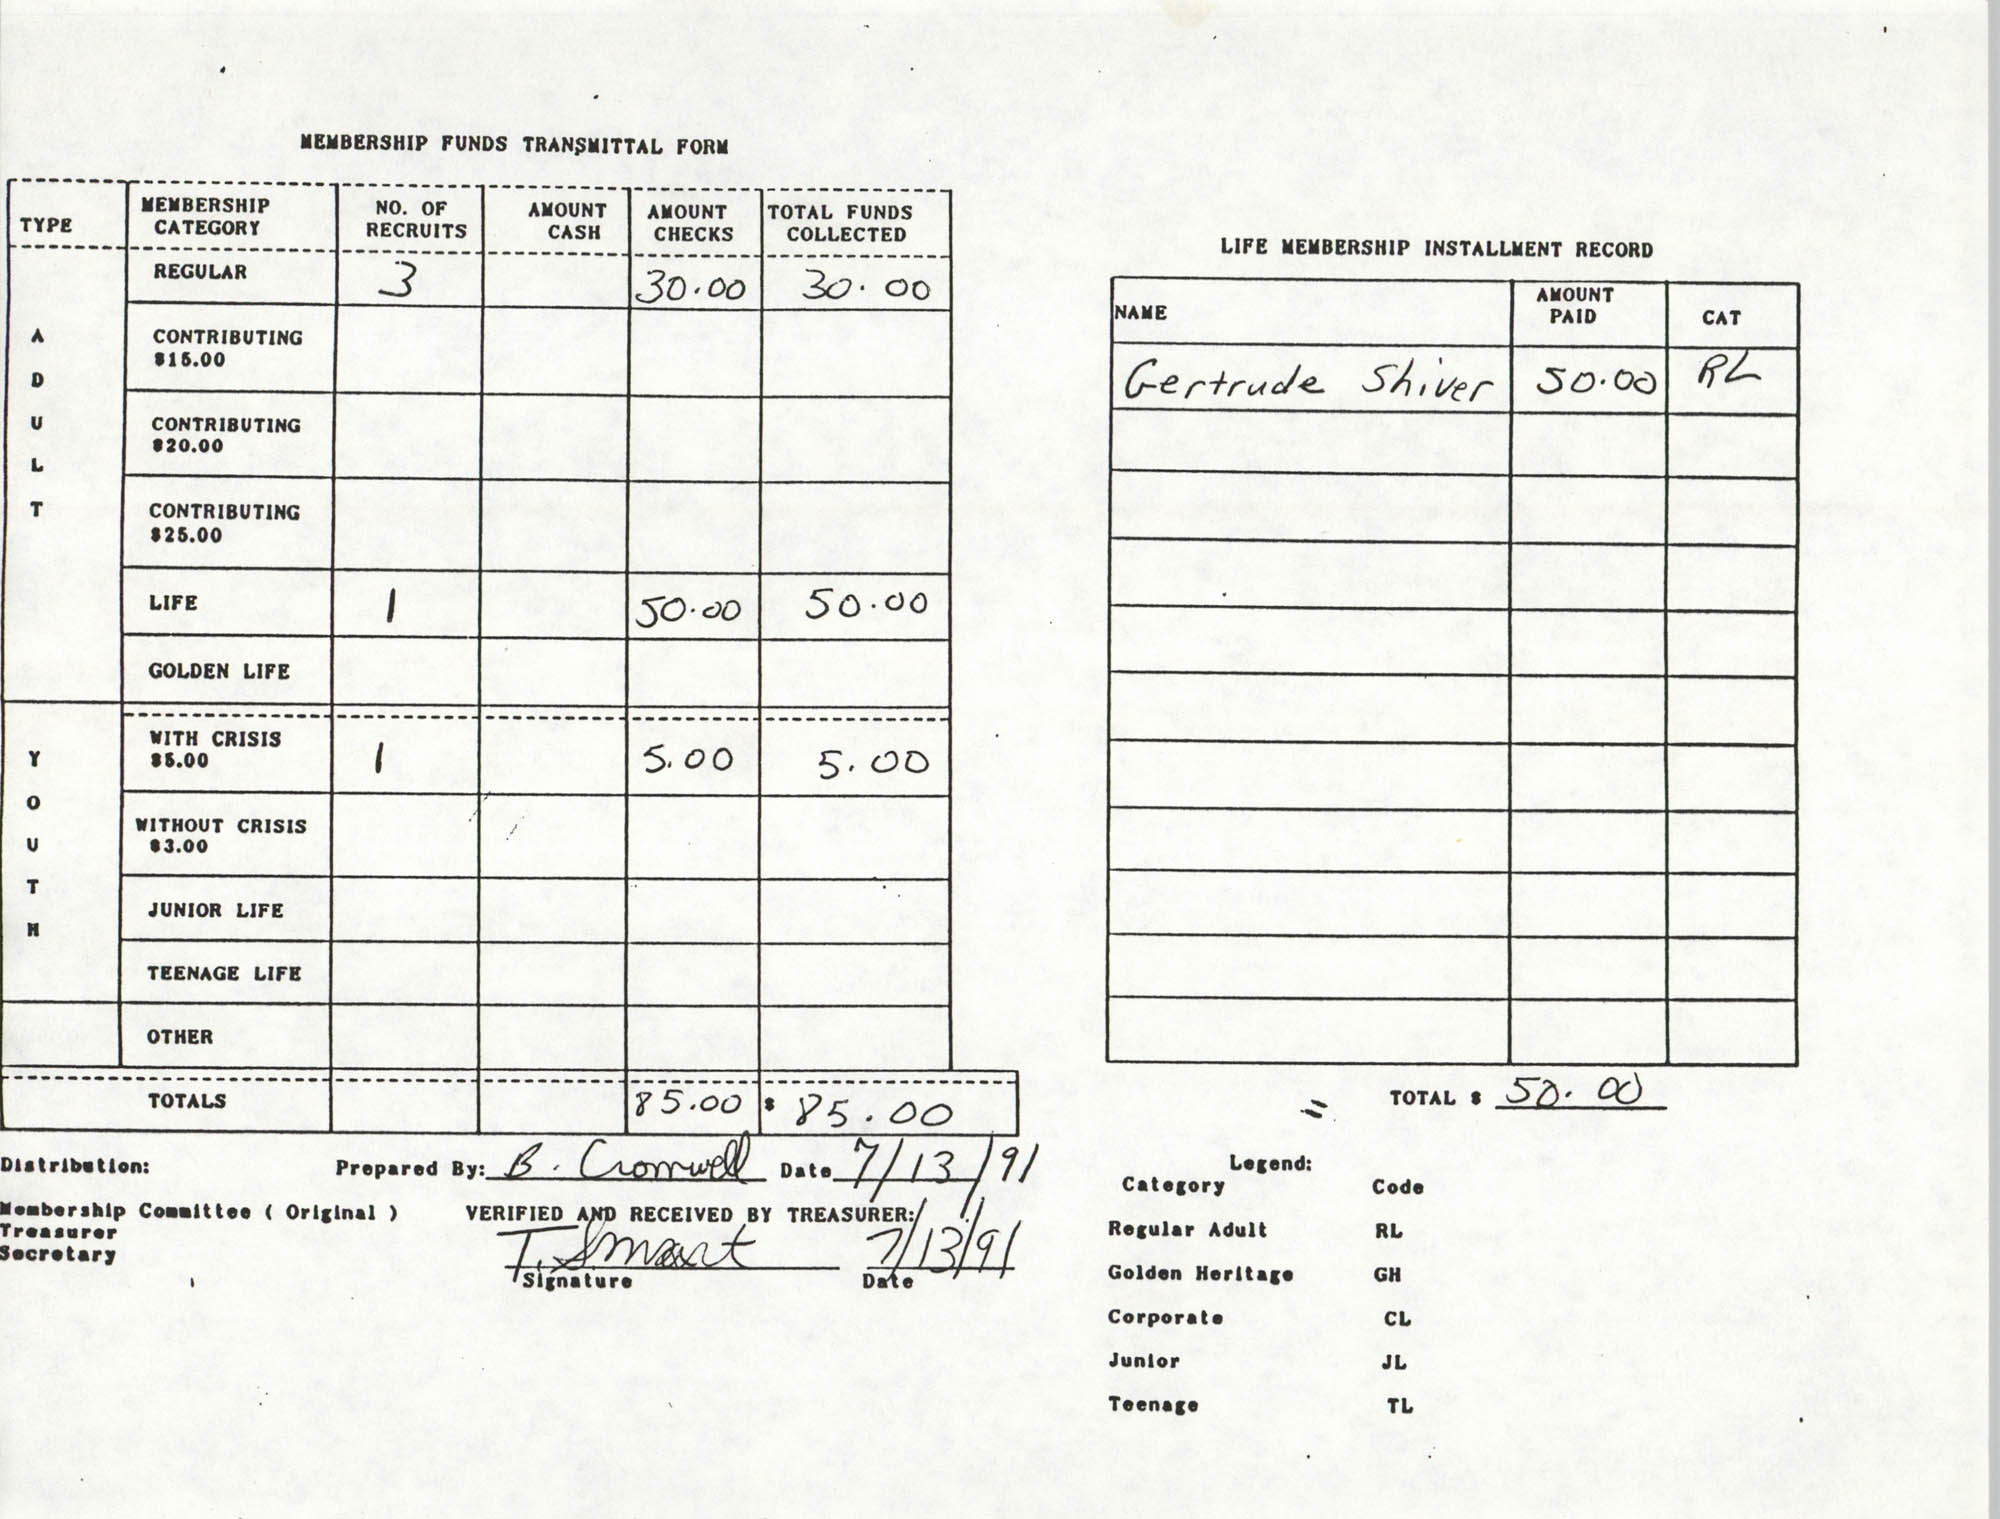 Charleston Branch of the NAACP Funds Transmittal Forms, July 1991, Page 4